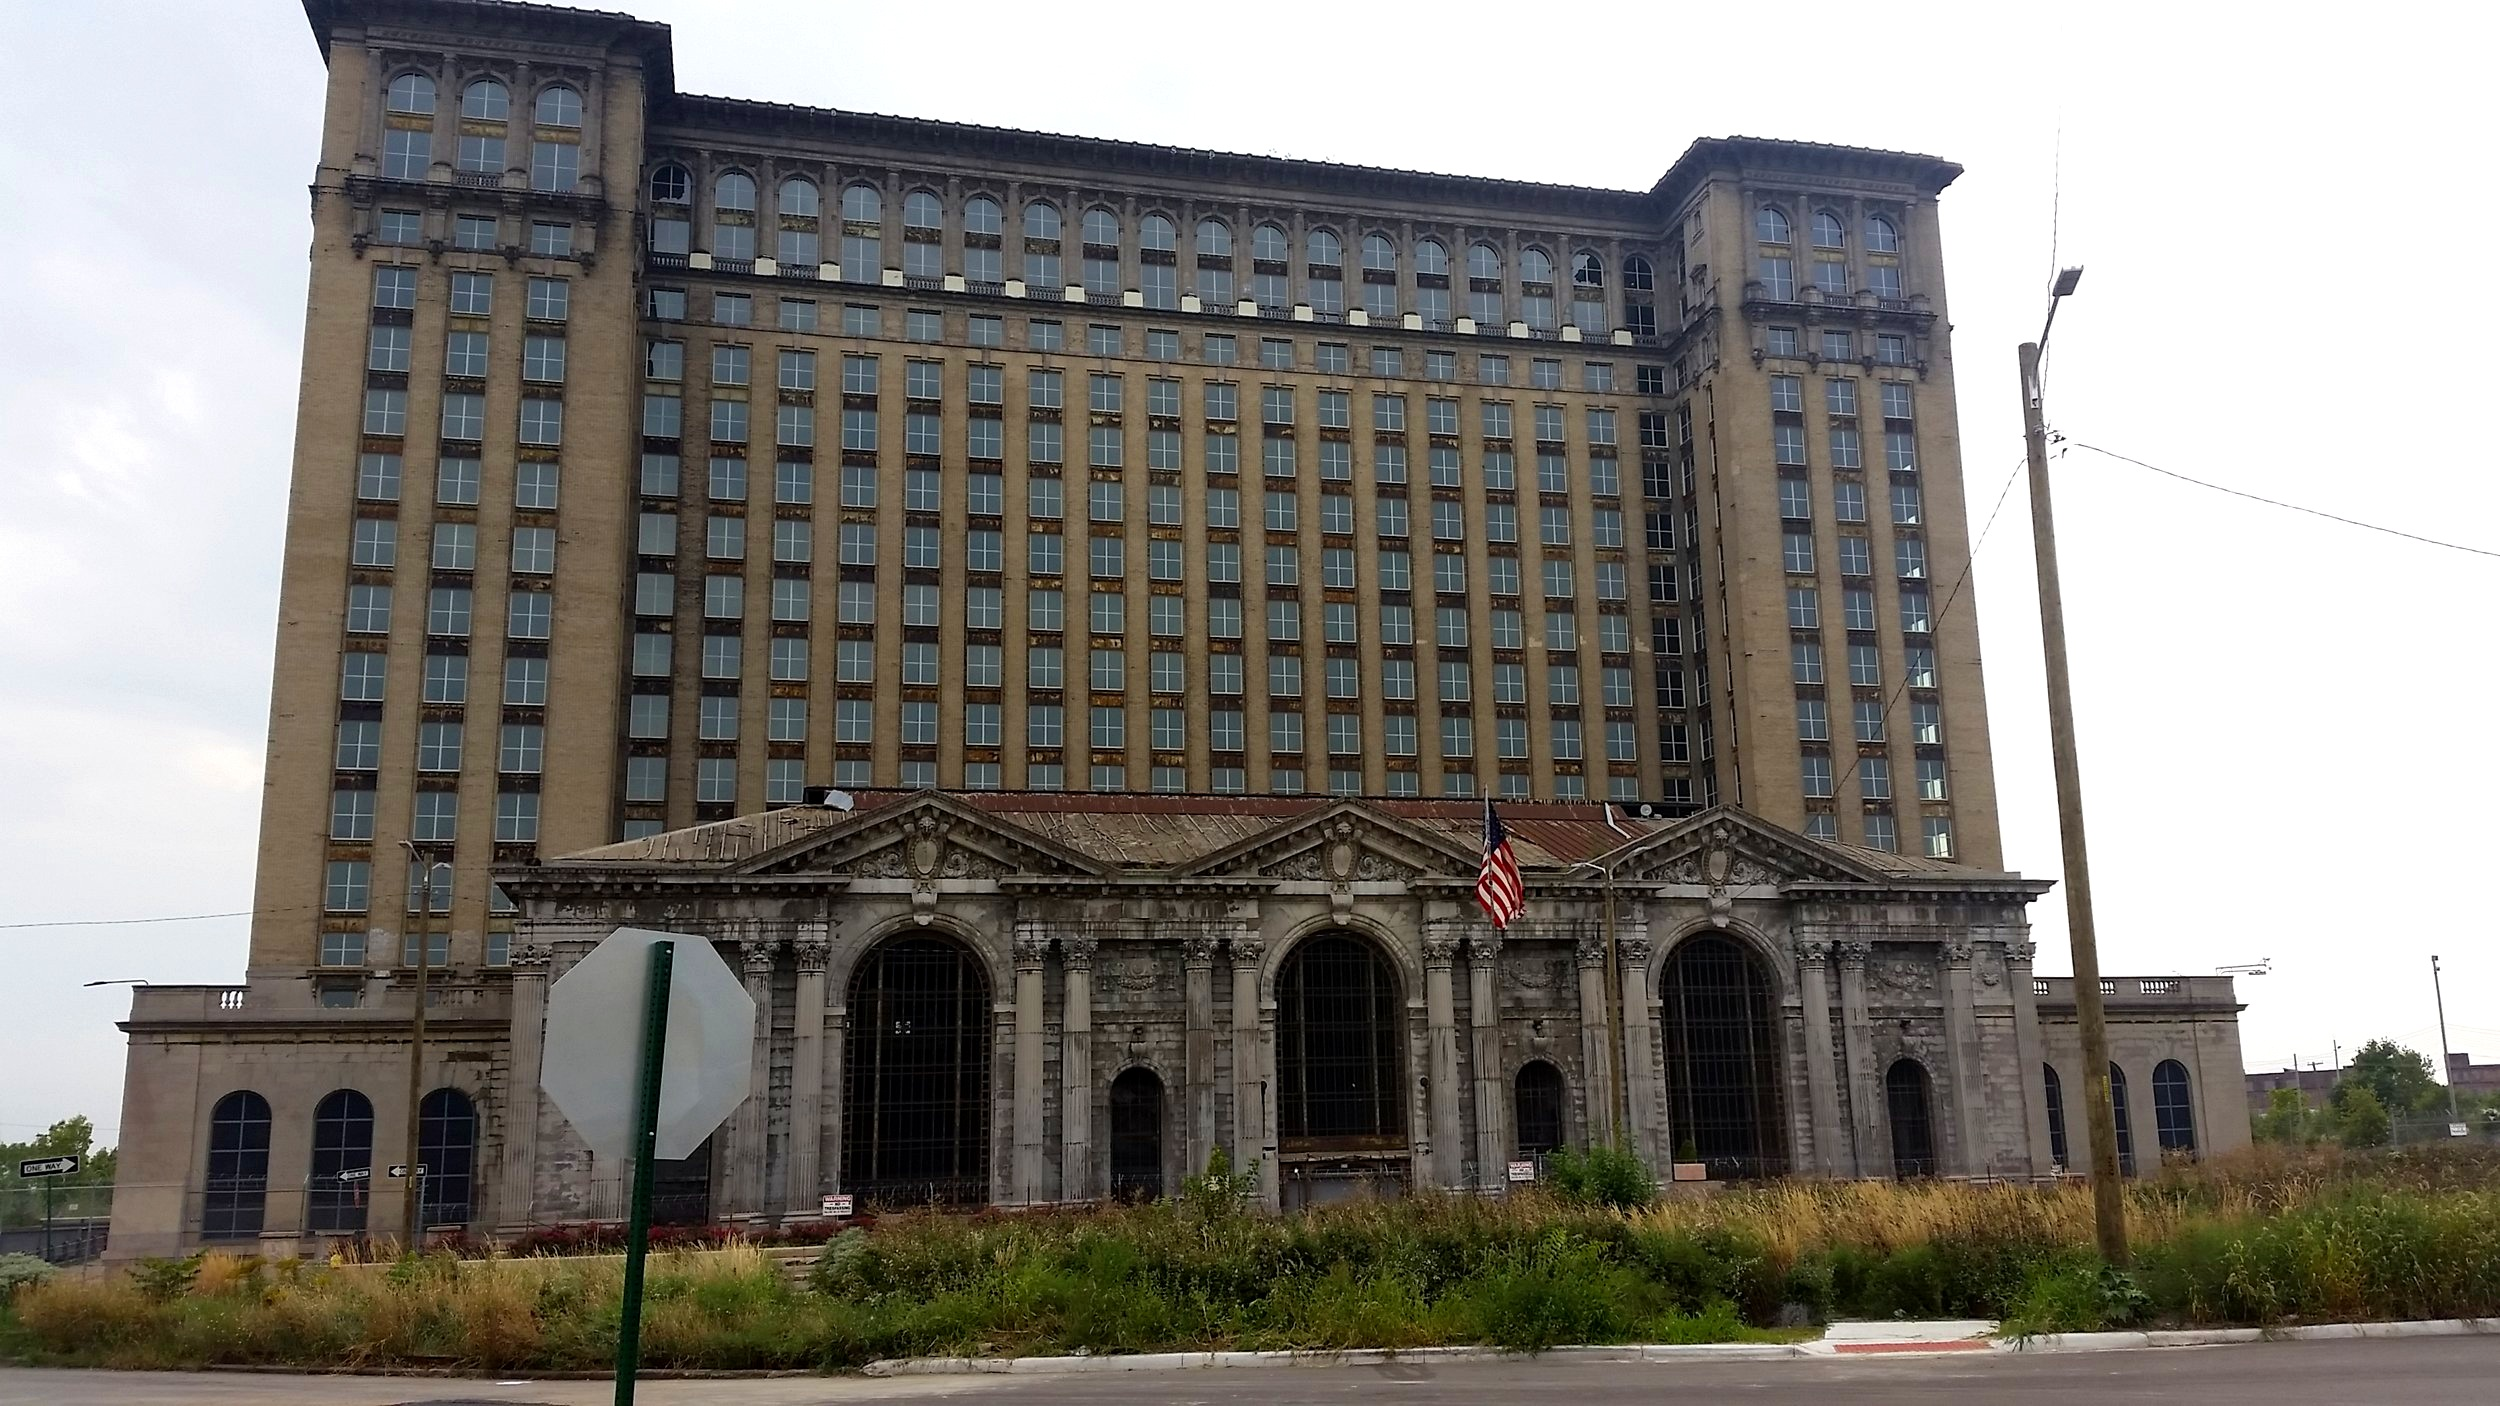 Michigan Central Station, which has been closed since 1988.